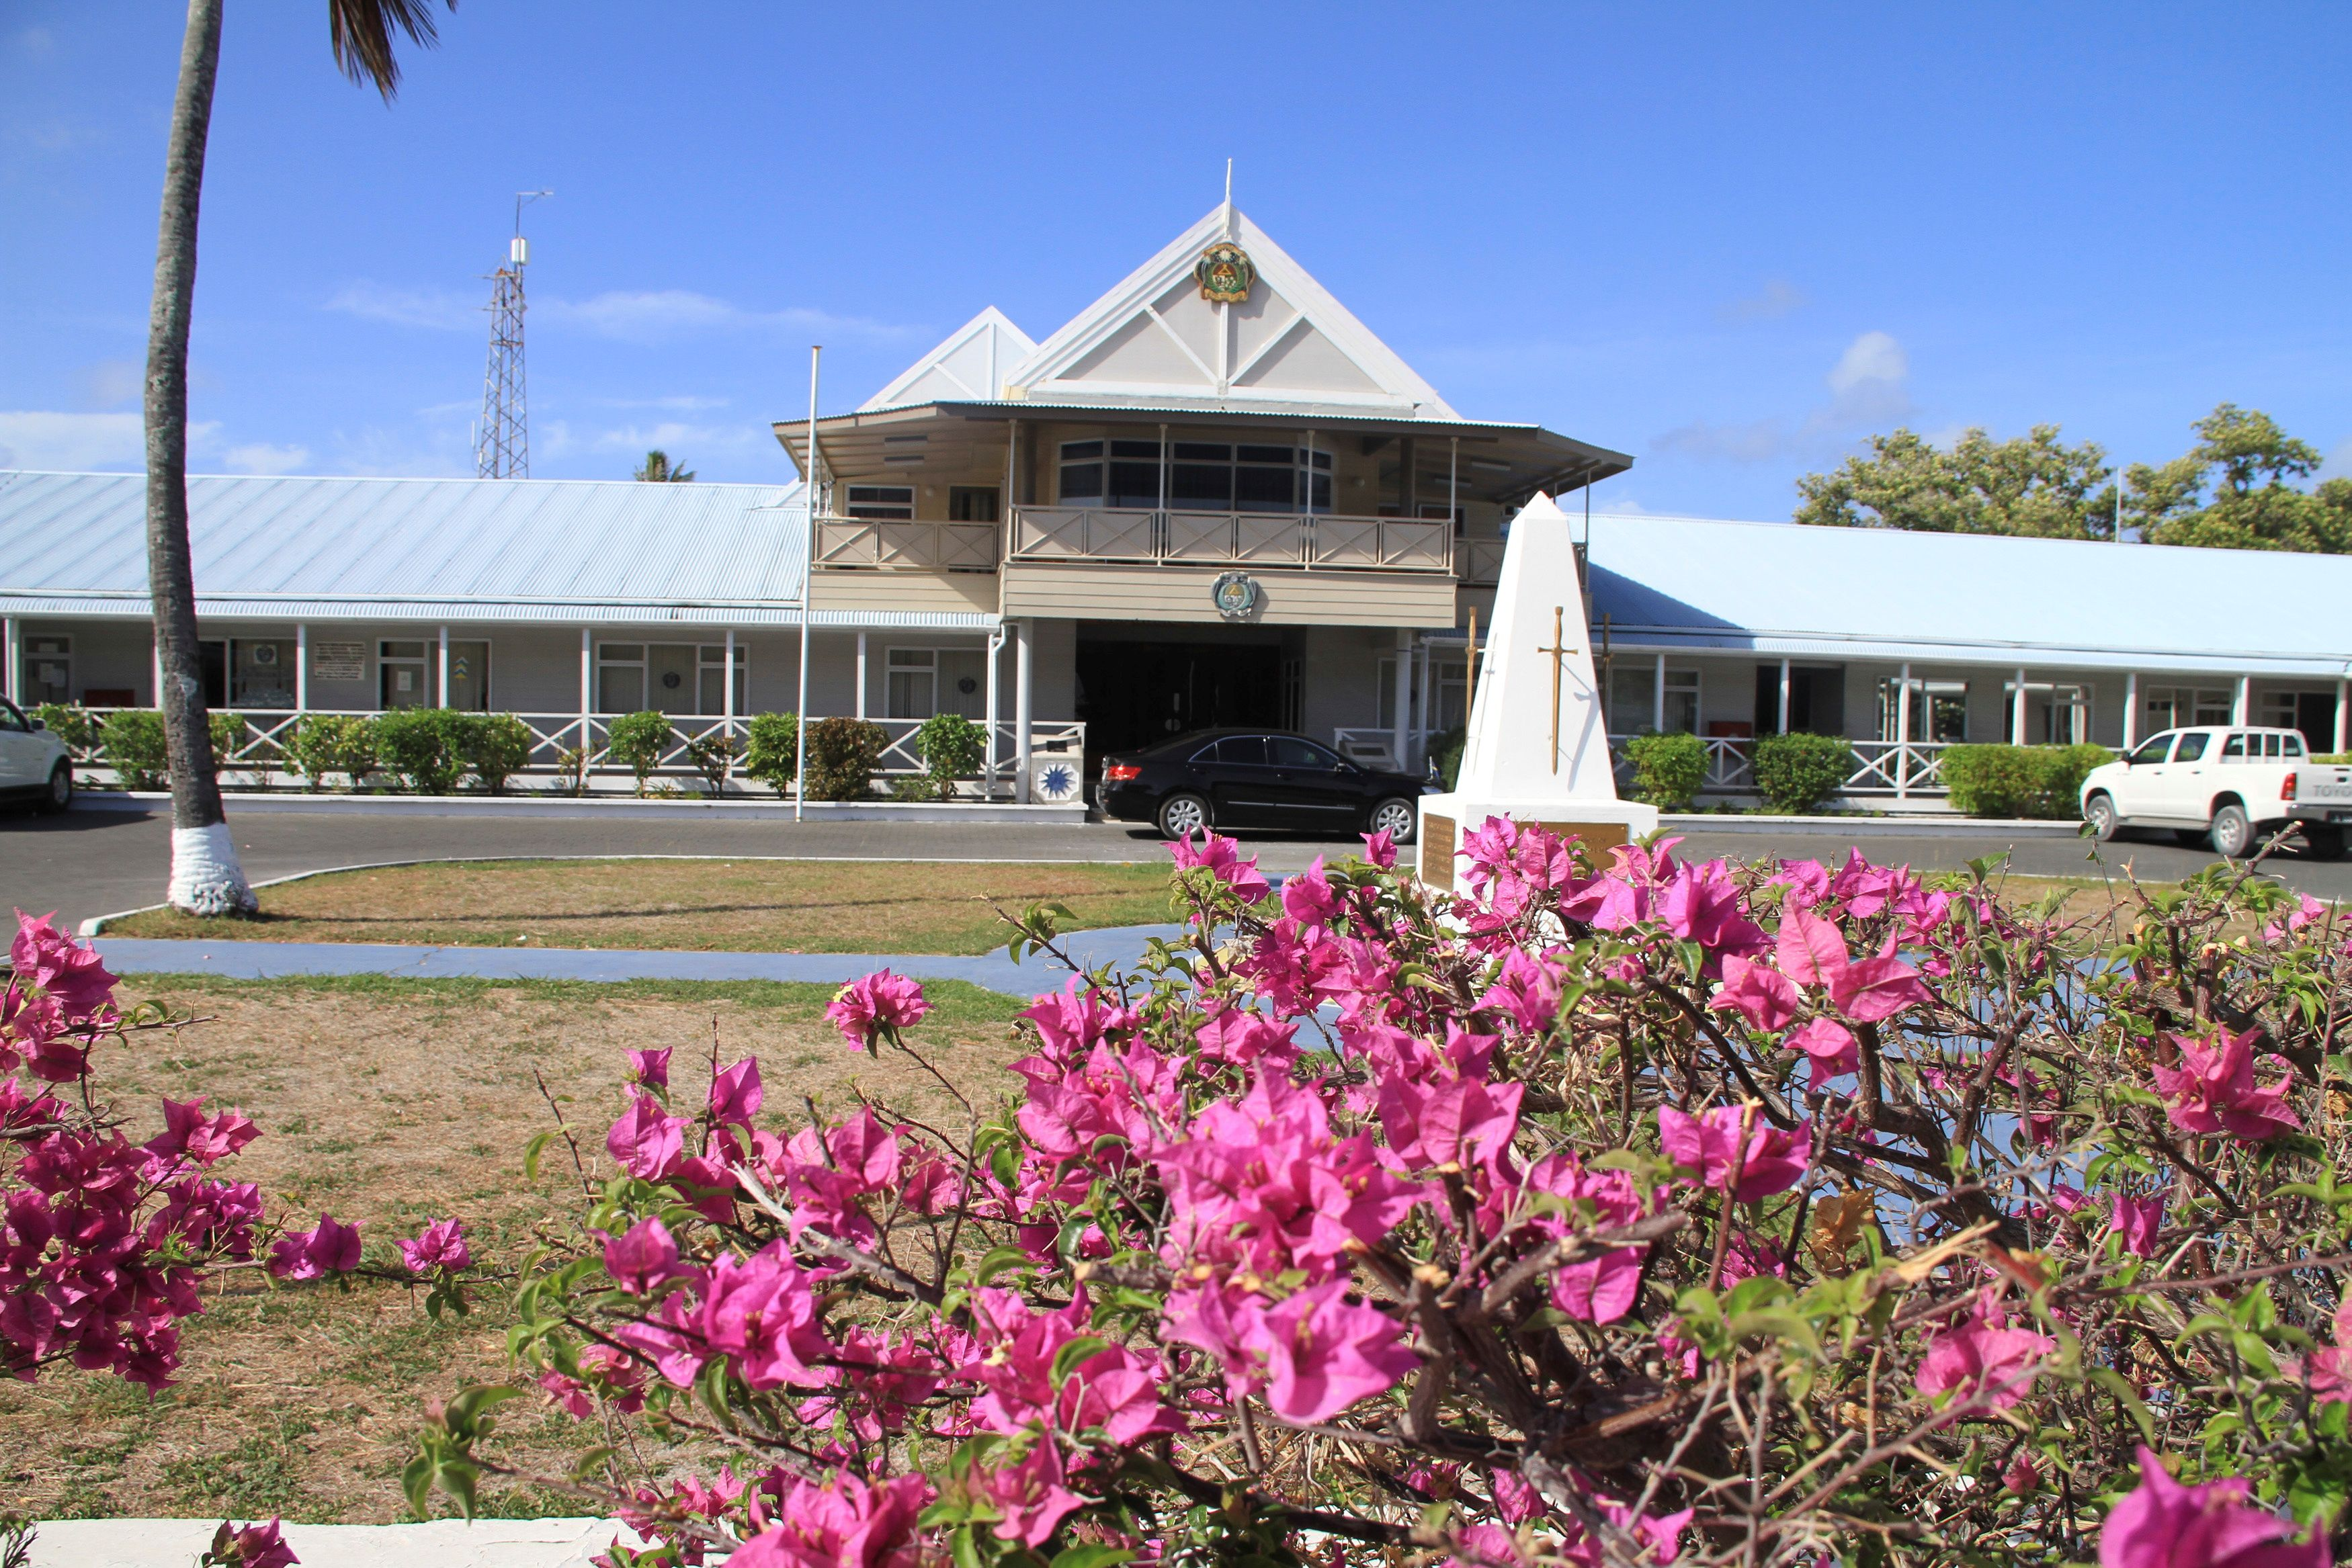 FILE PHOTO: An exterior view of the government offices of the small island nation of Nauru is pictured, February 10, 2012.   REUTERS/Rod Henshaw/File Photo - RC2U6O9T1FKI